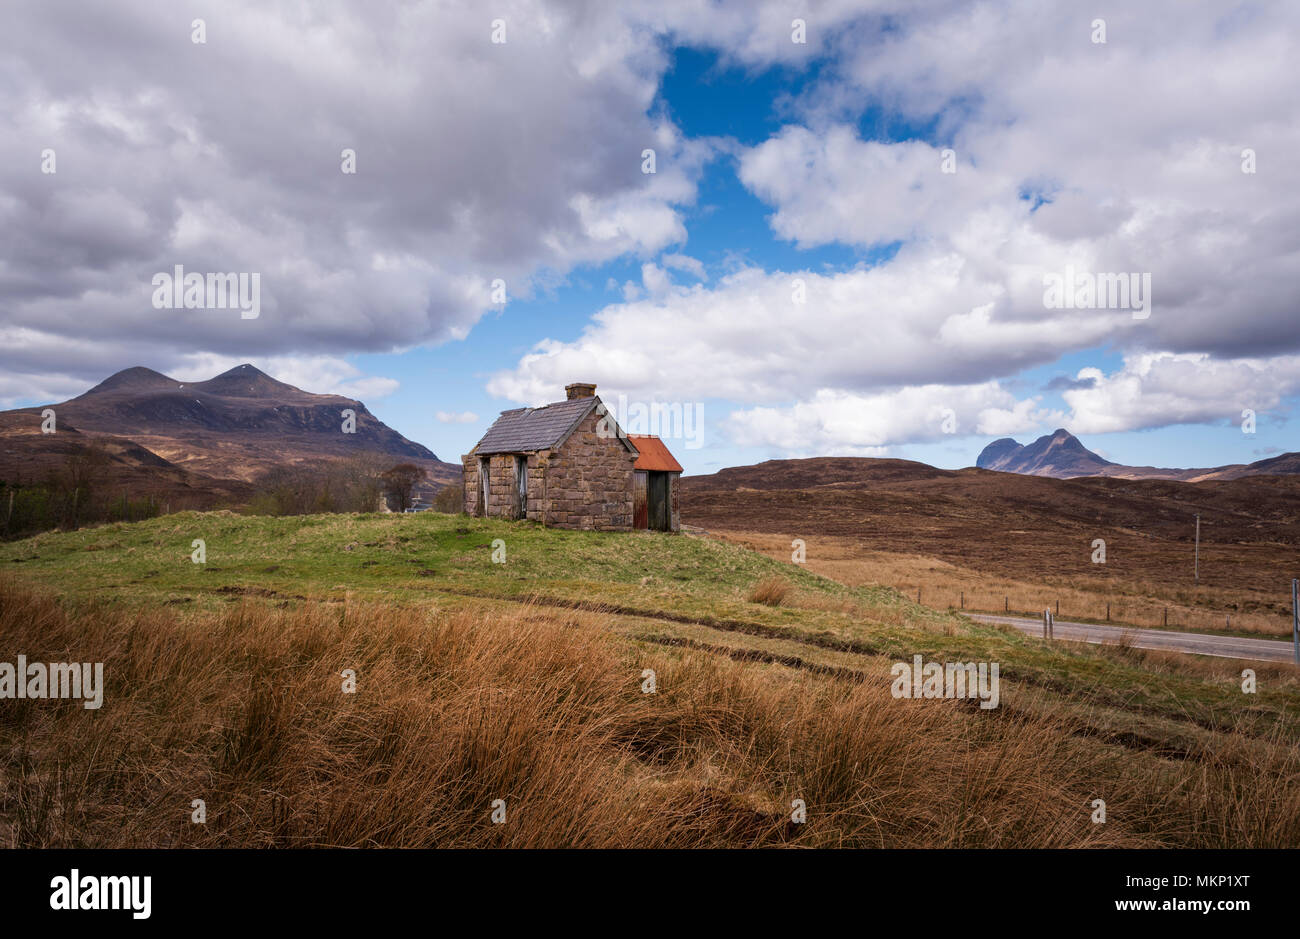 Derelict farm house byre or croft building in remote landscape of North West Highlands of Scotland. Mountains L to R Cul Mor and Suilven - Stock Image